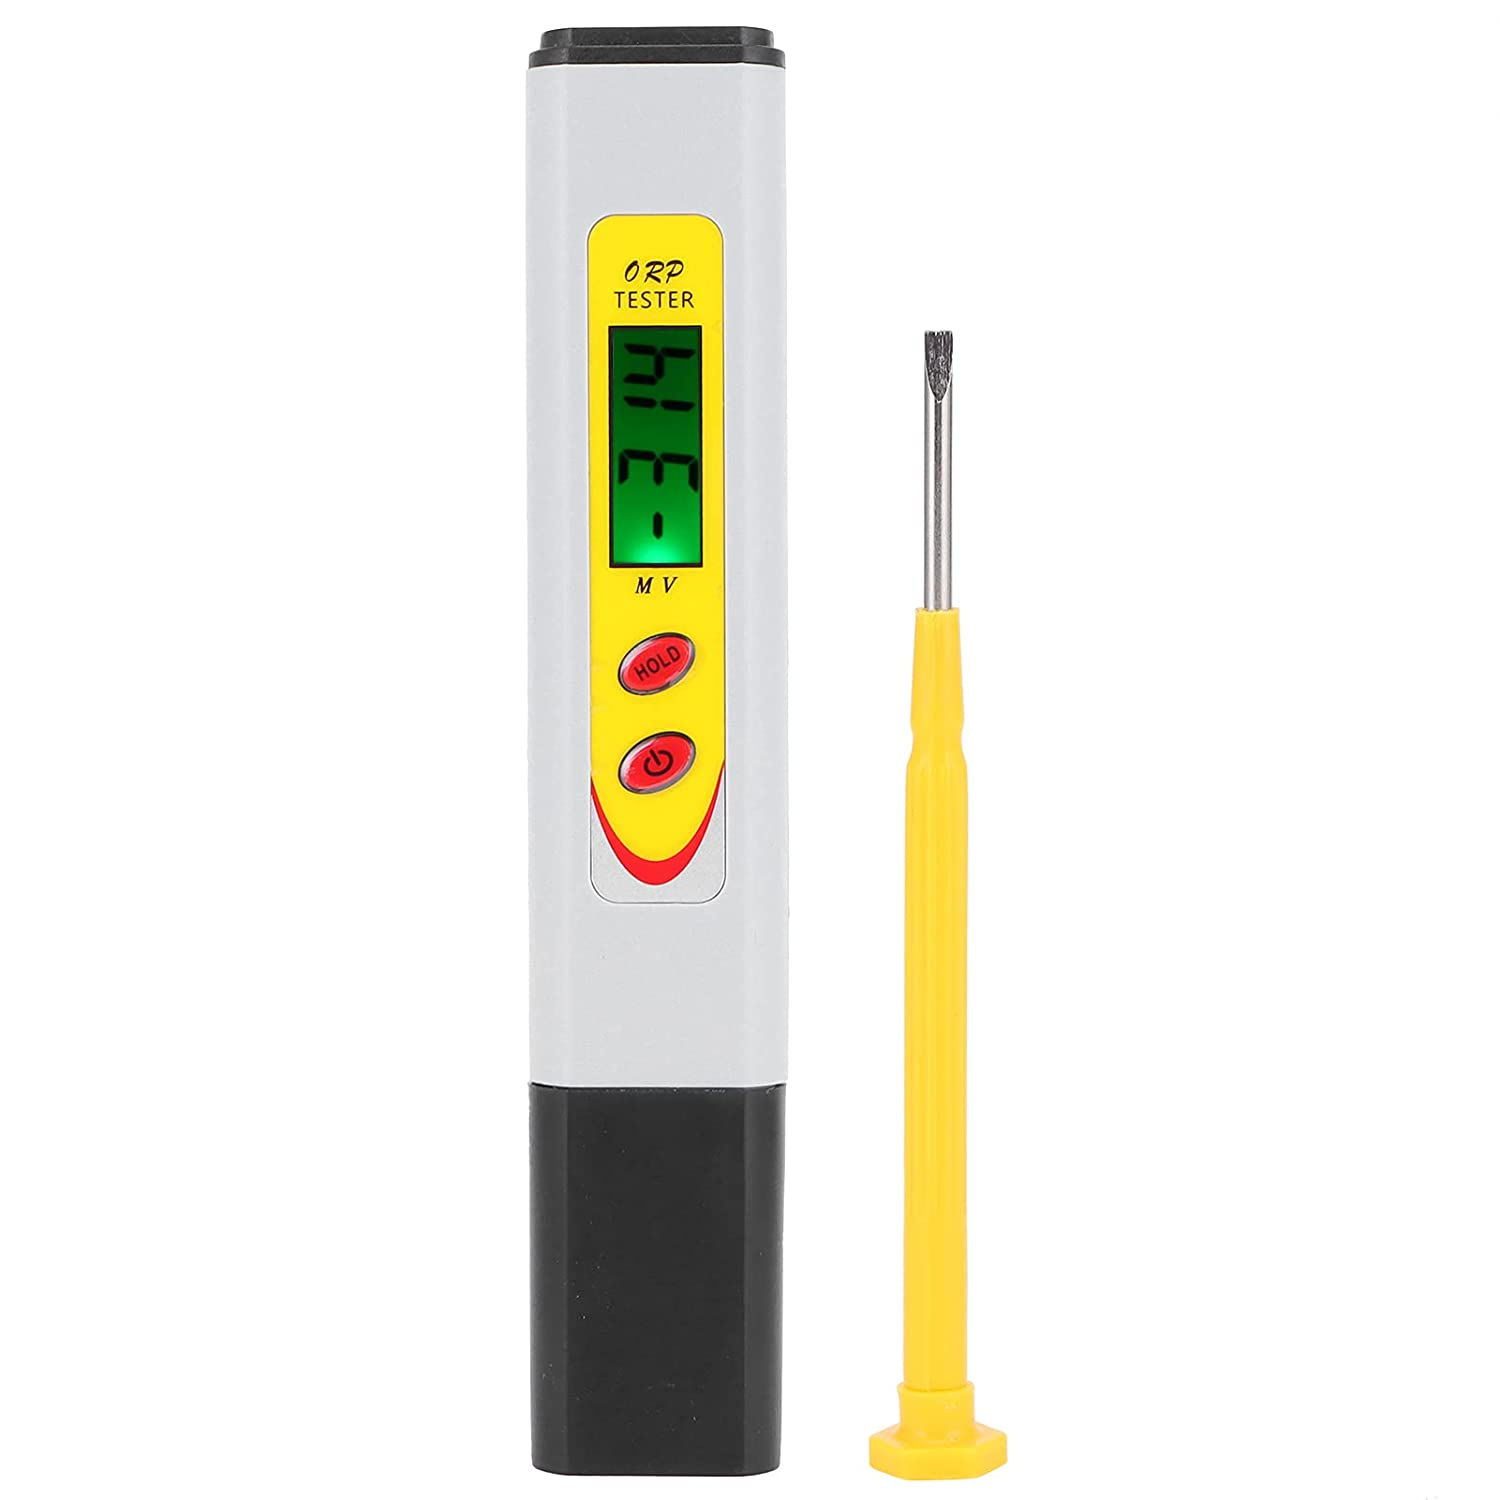 High order Water Quality Special price for a limited time Meter Portable Mi ORP Tester